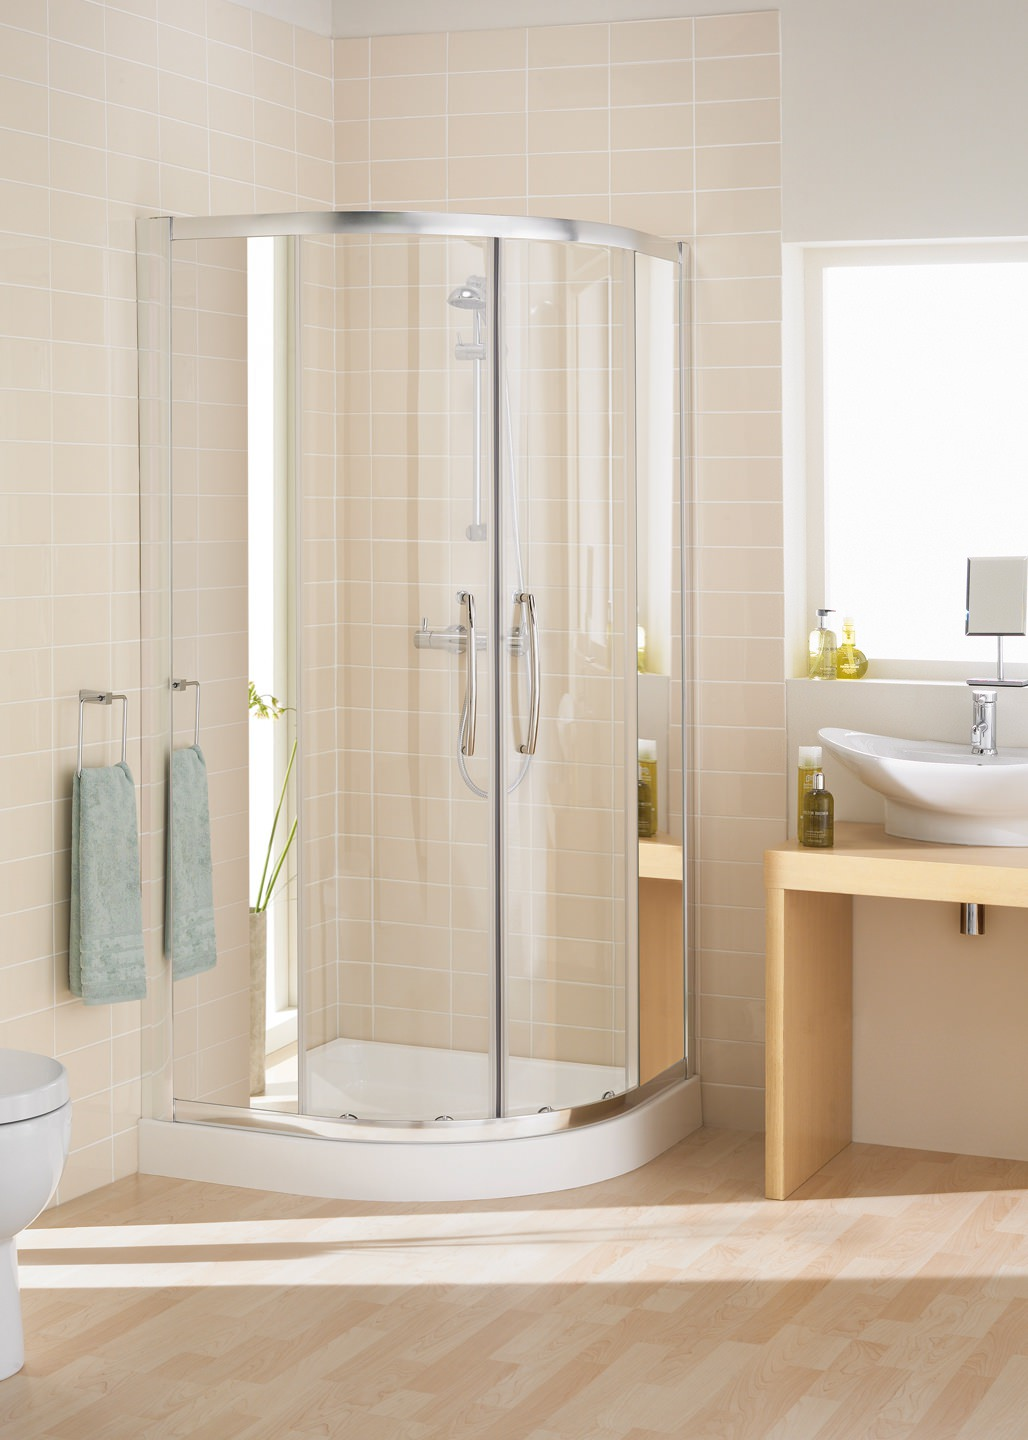 lakes mirror glass 800 x 800mm single rail quadrant shower e